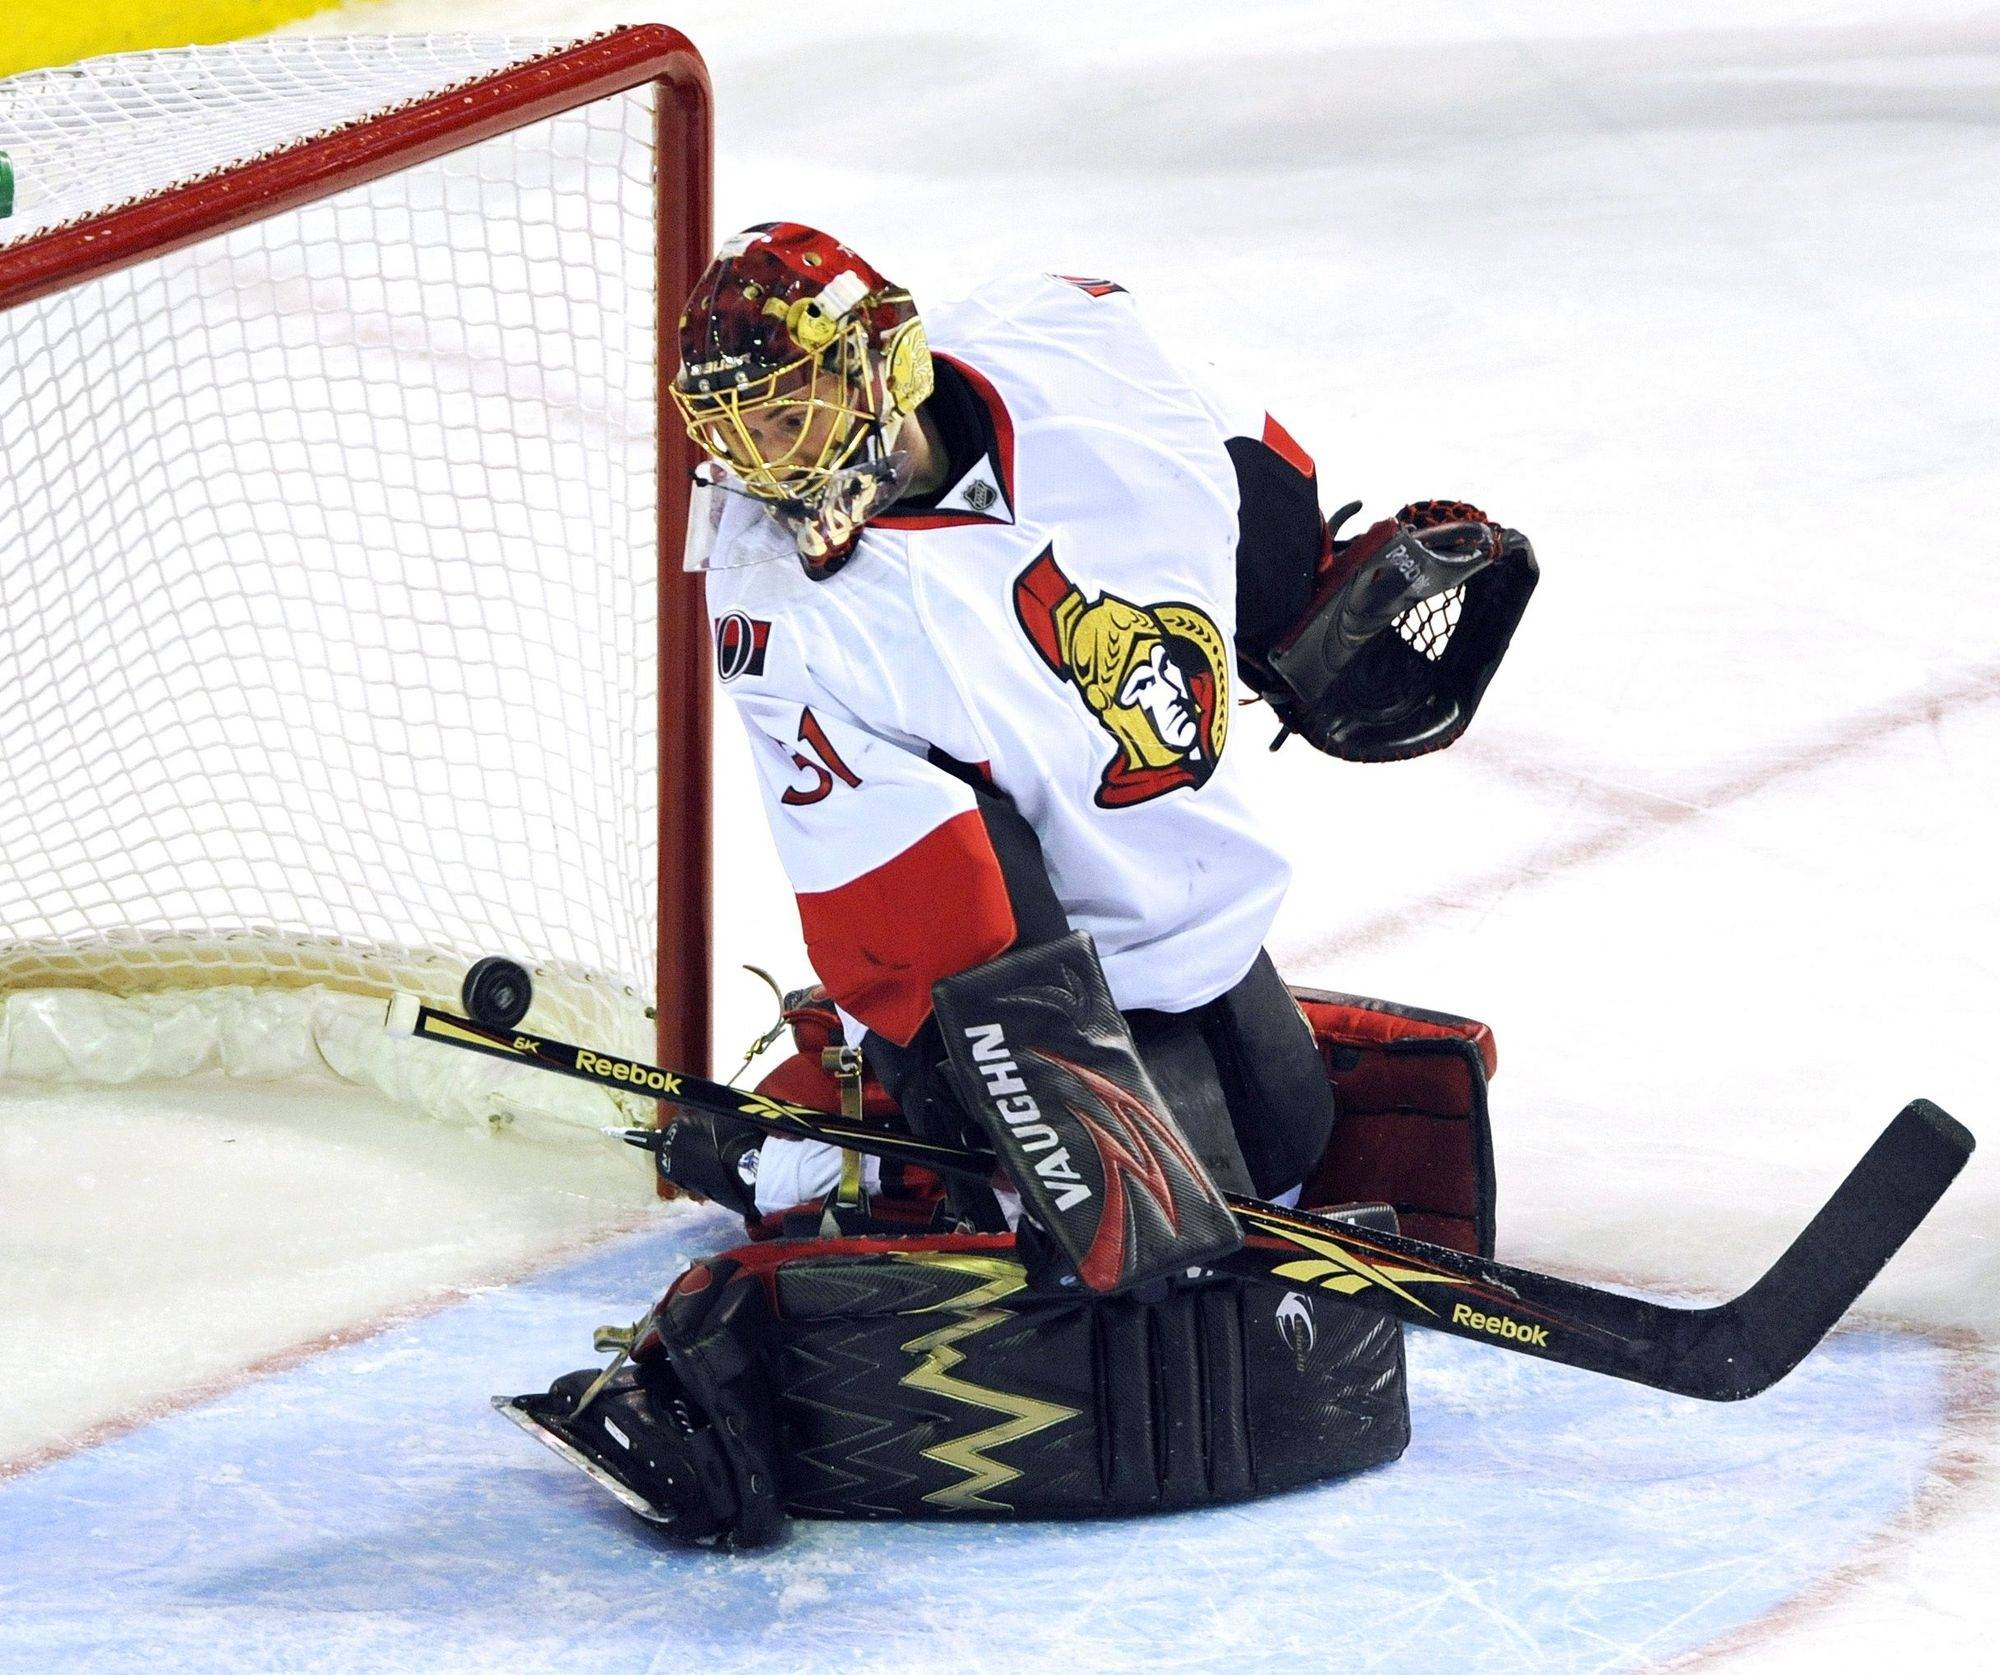 Ottawa Senators goaltender Mike Brodeur is scored on by Montreal Canadiens' Benoit Pouliot (not shown) during the first period of an NHL hockey game in Montreal, Saturday.